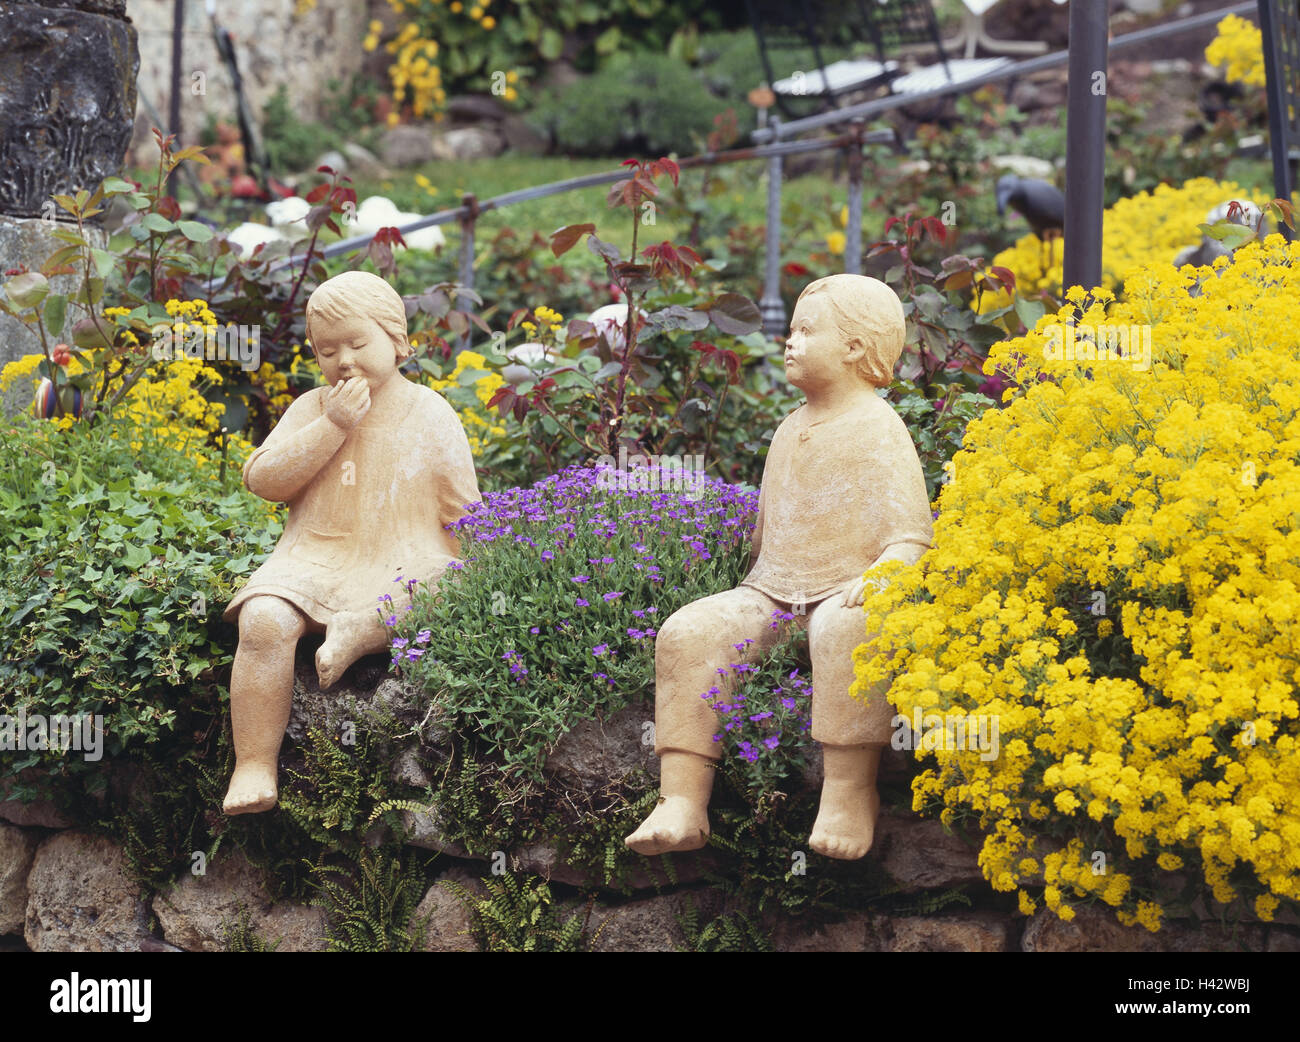 Superieur Stone Garden, Flowers, Garden Figures, Children, Defensive Wall, Masonry,  Garden, Stone Garden, Foreground, Figure, Two, Figures, Tone Figures,  Children, ...